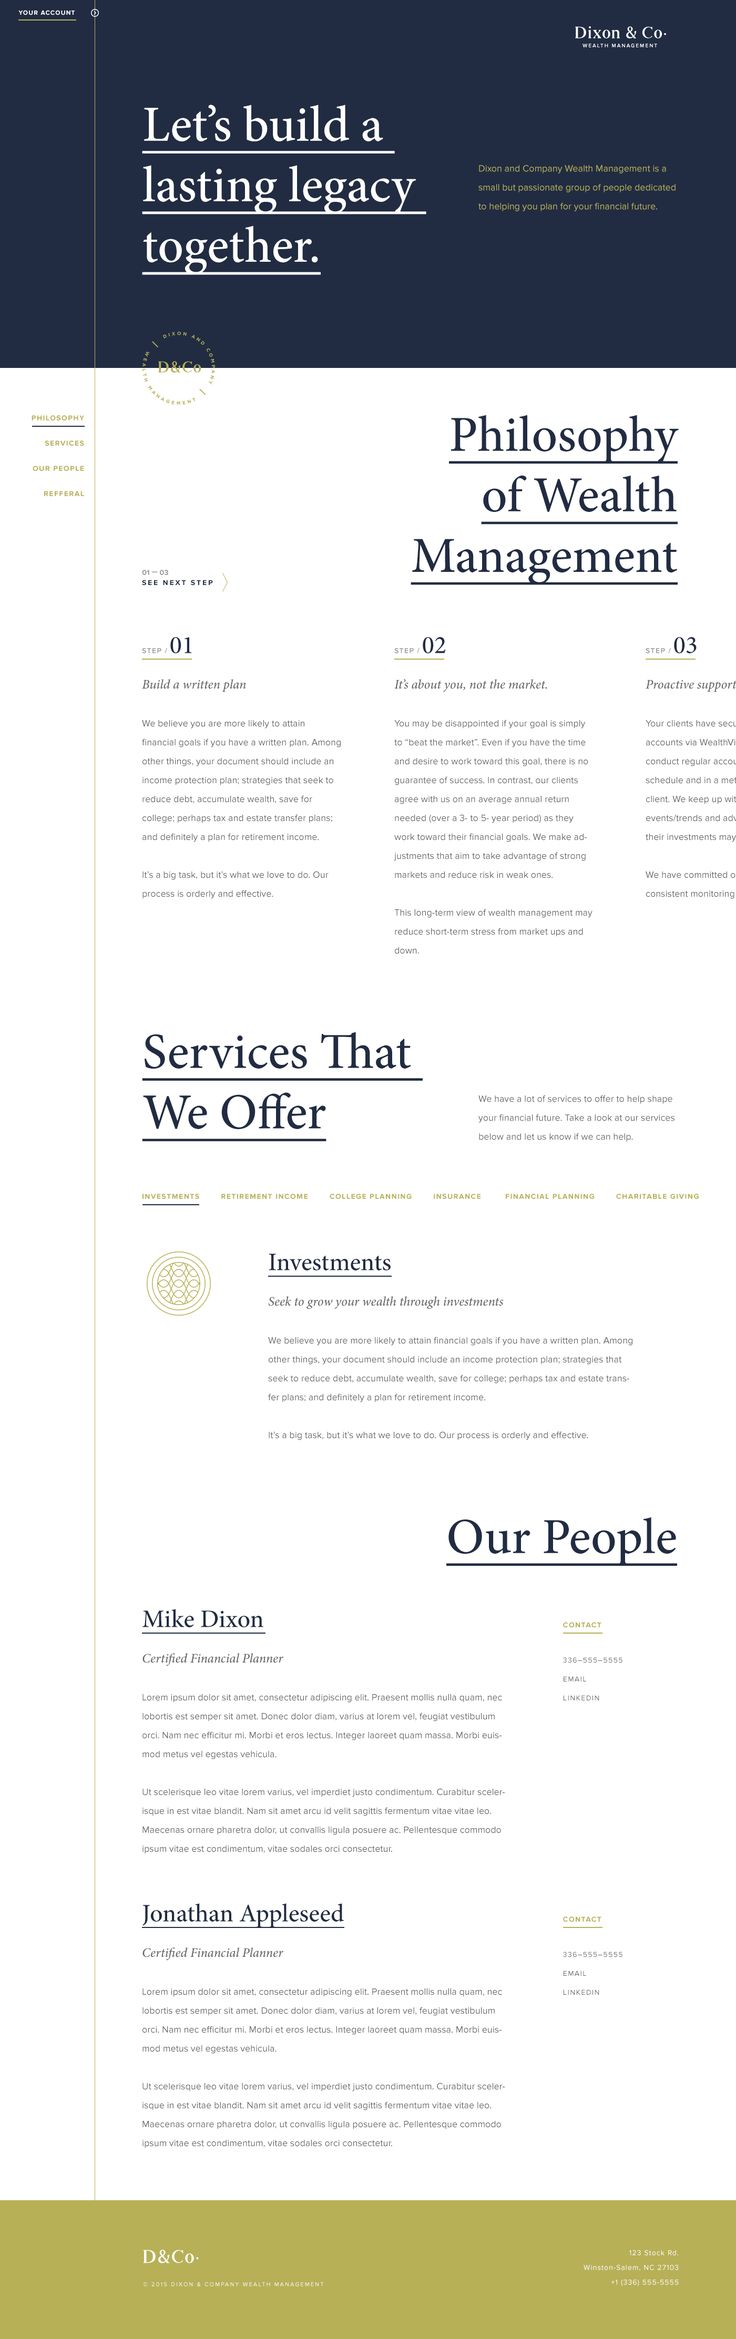 D&Co Website by Adam Dixon | dribbble